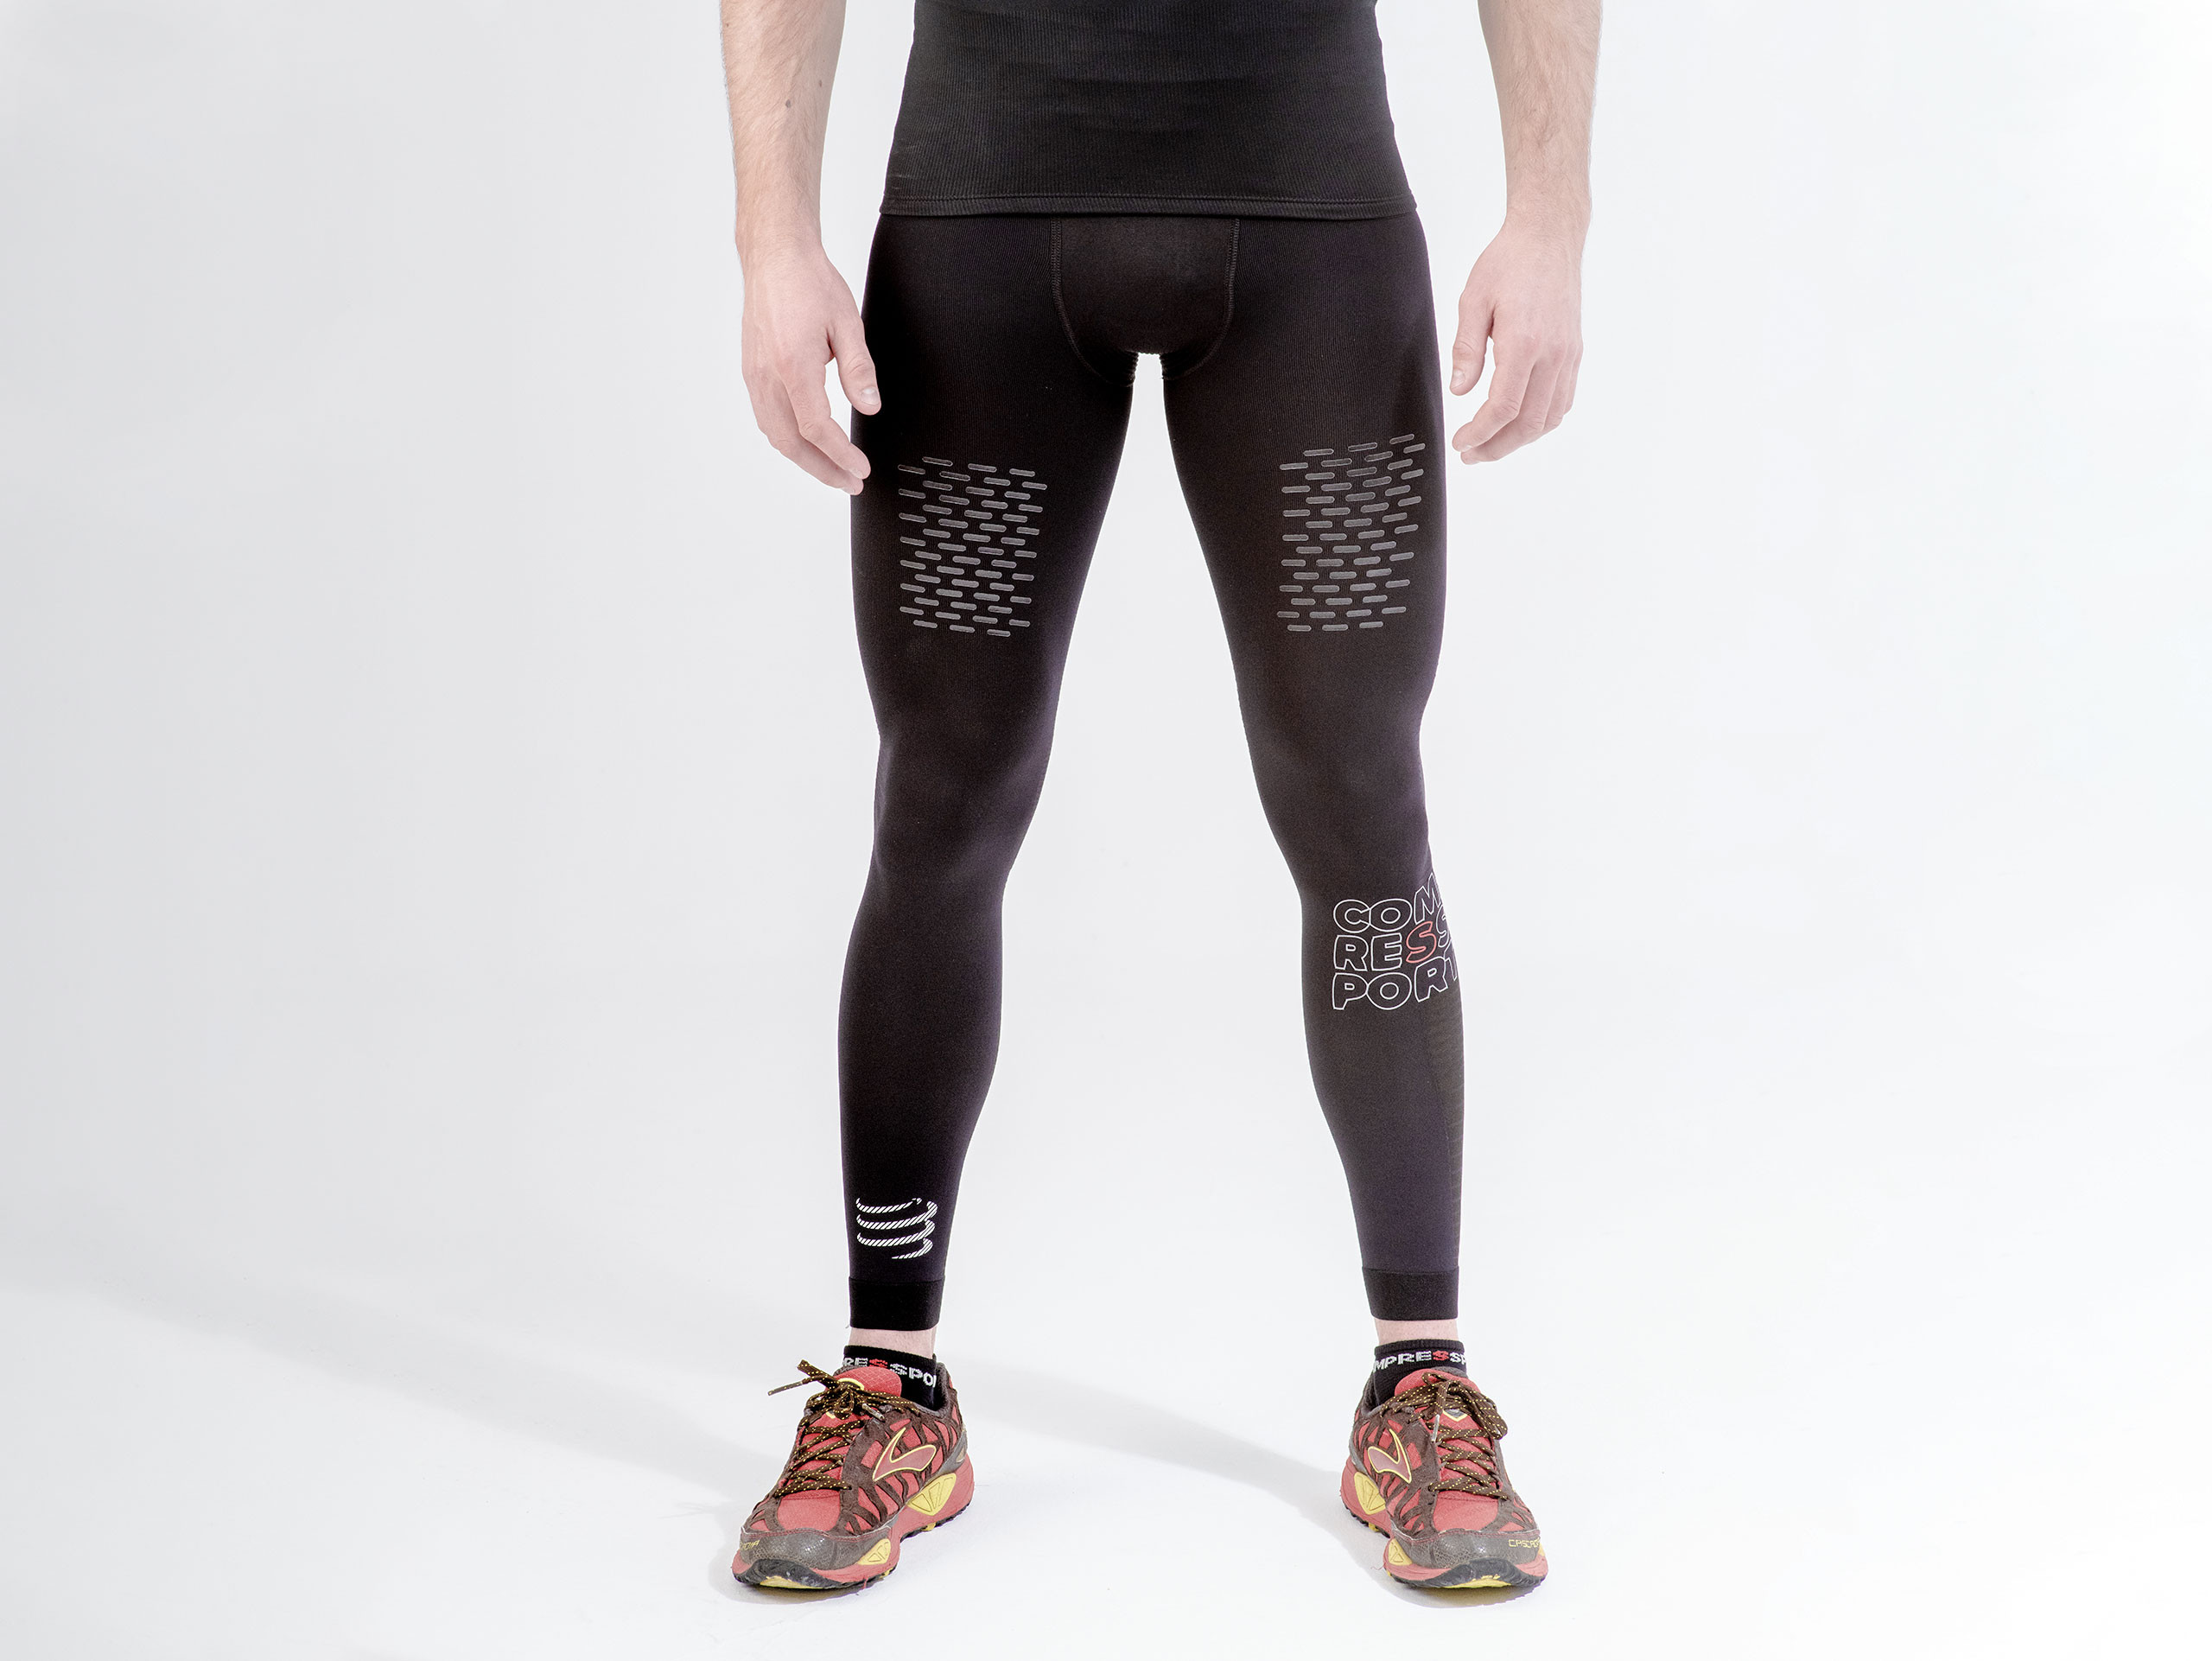 Pantaloni da trail running Under Control neri